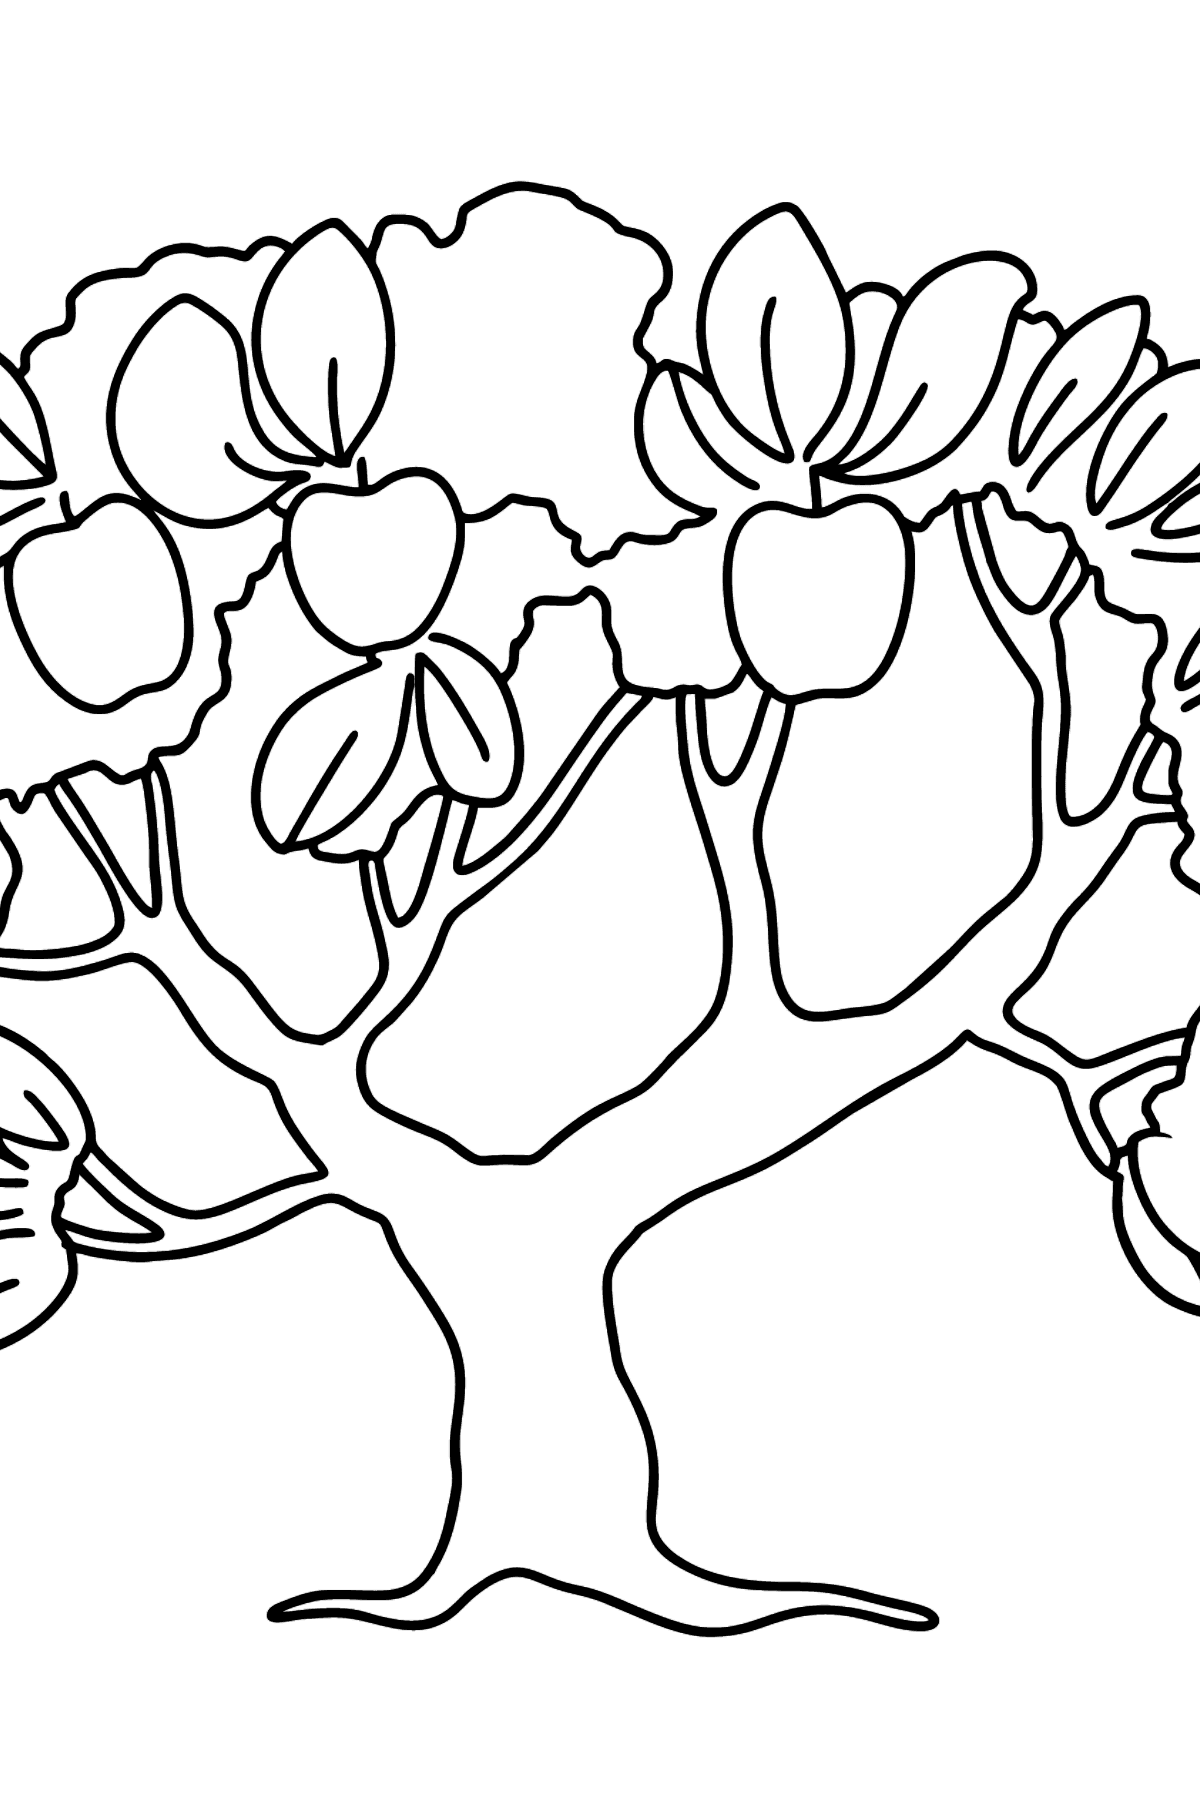 Apple Tree Difficult coloring page - Coloring Pages for Kids